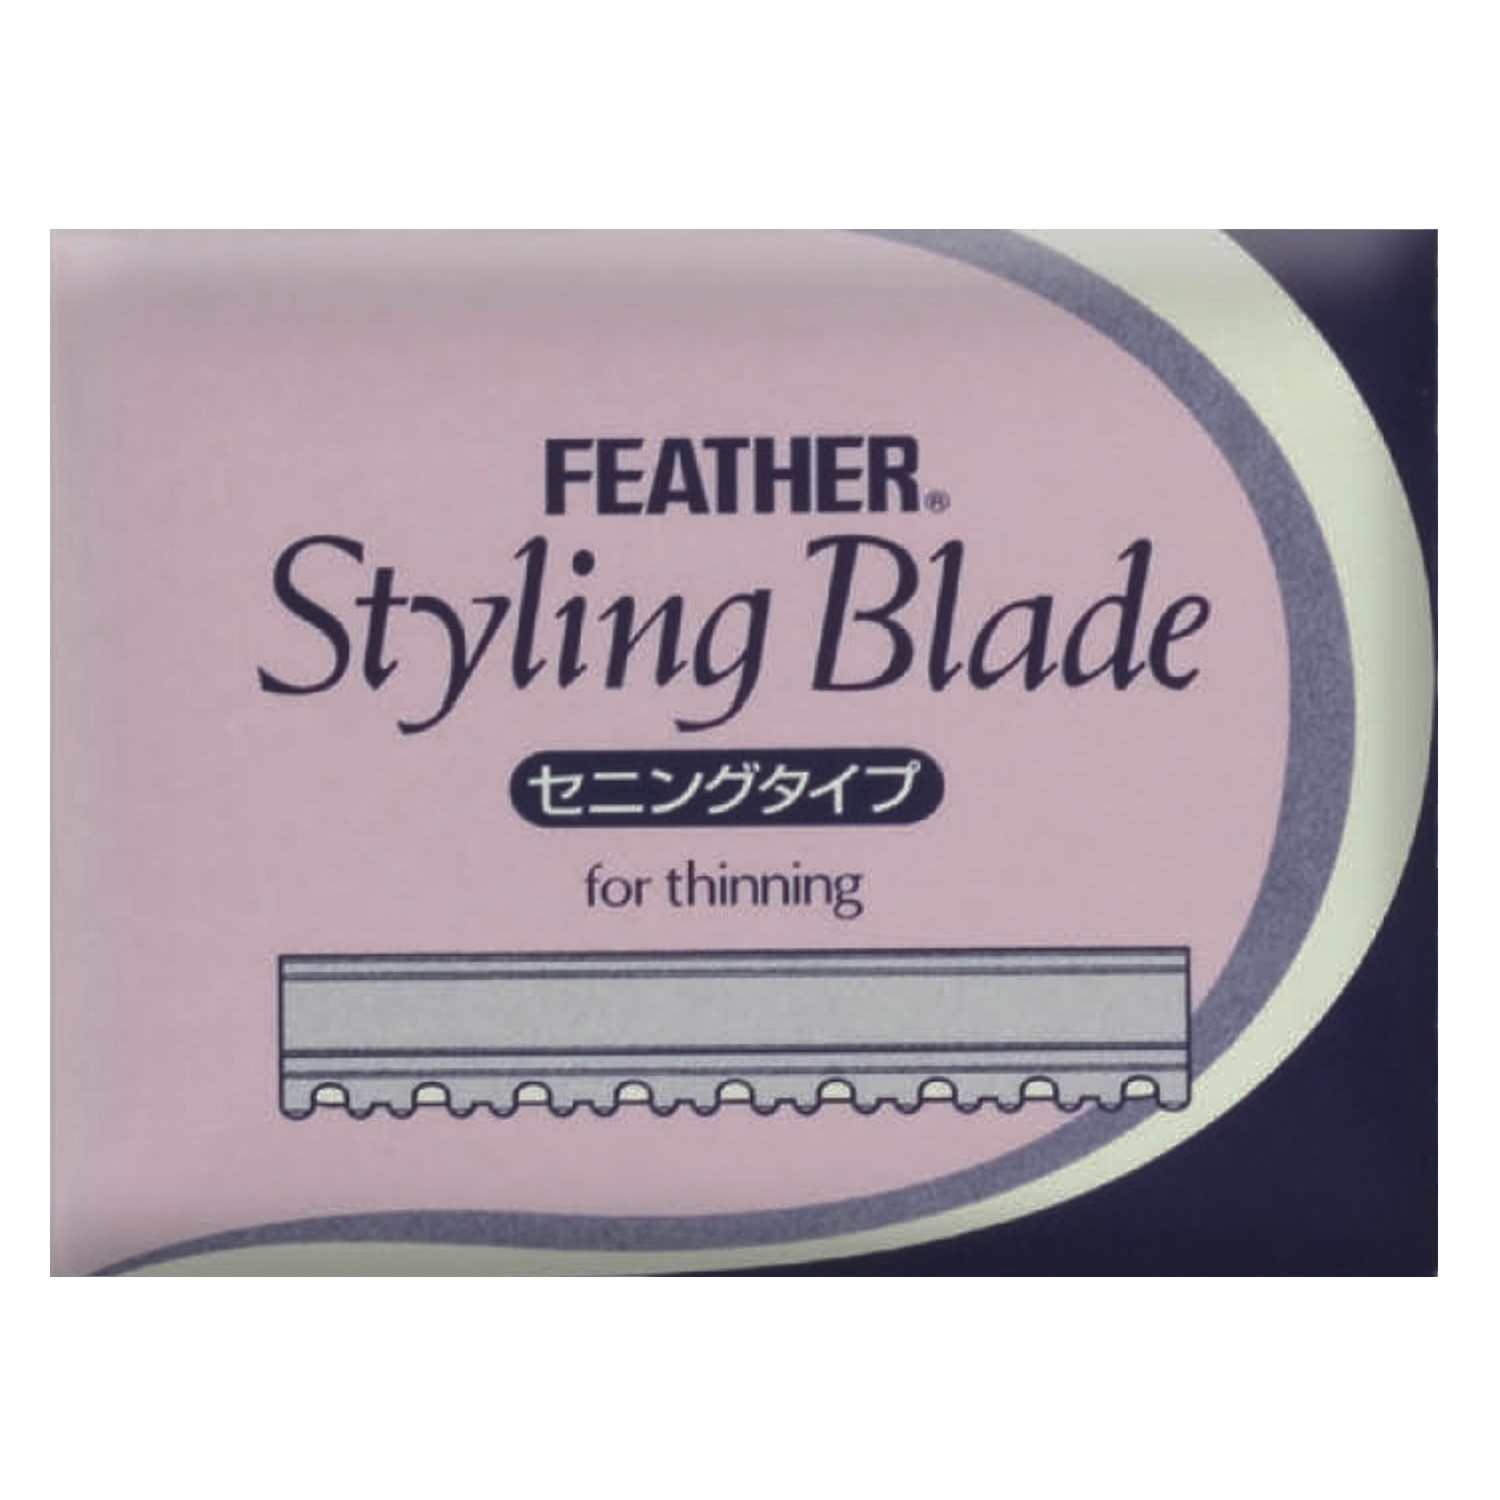 FEATHER Styling Blade Klingen FOR THINNING 10 St.